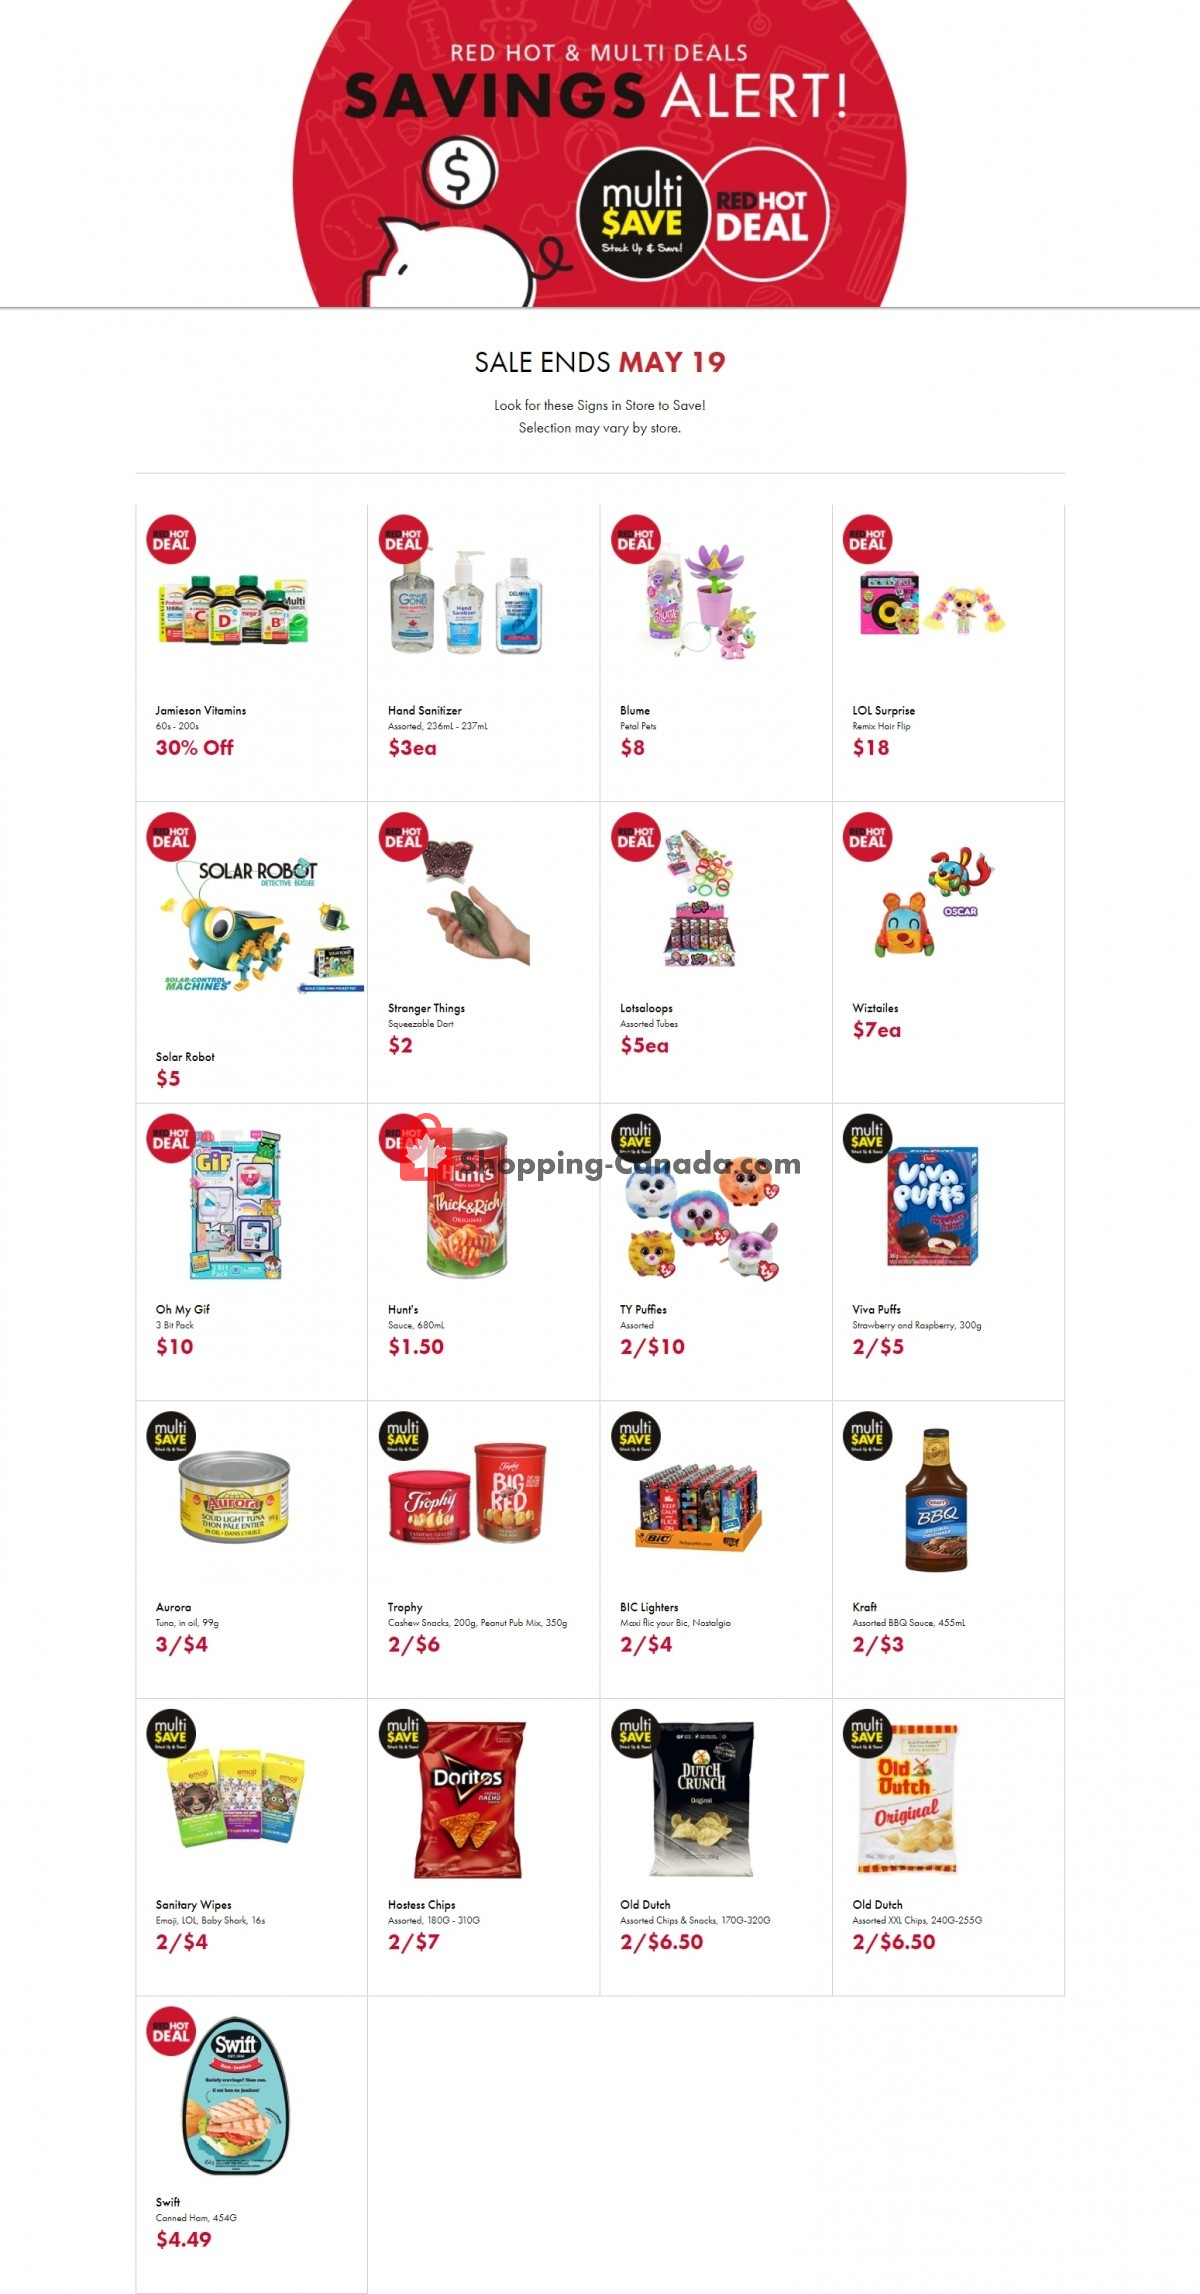 Flyer The Bargain! Shop Canada - from Friday April 30, 2021 to Wednesday May 19, 2021